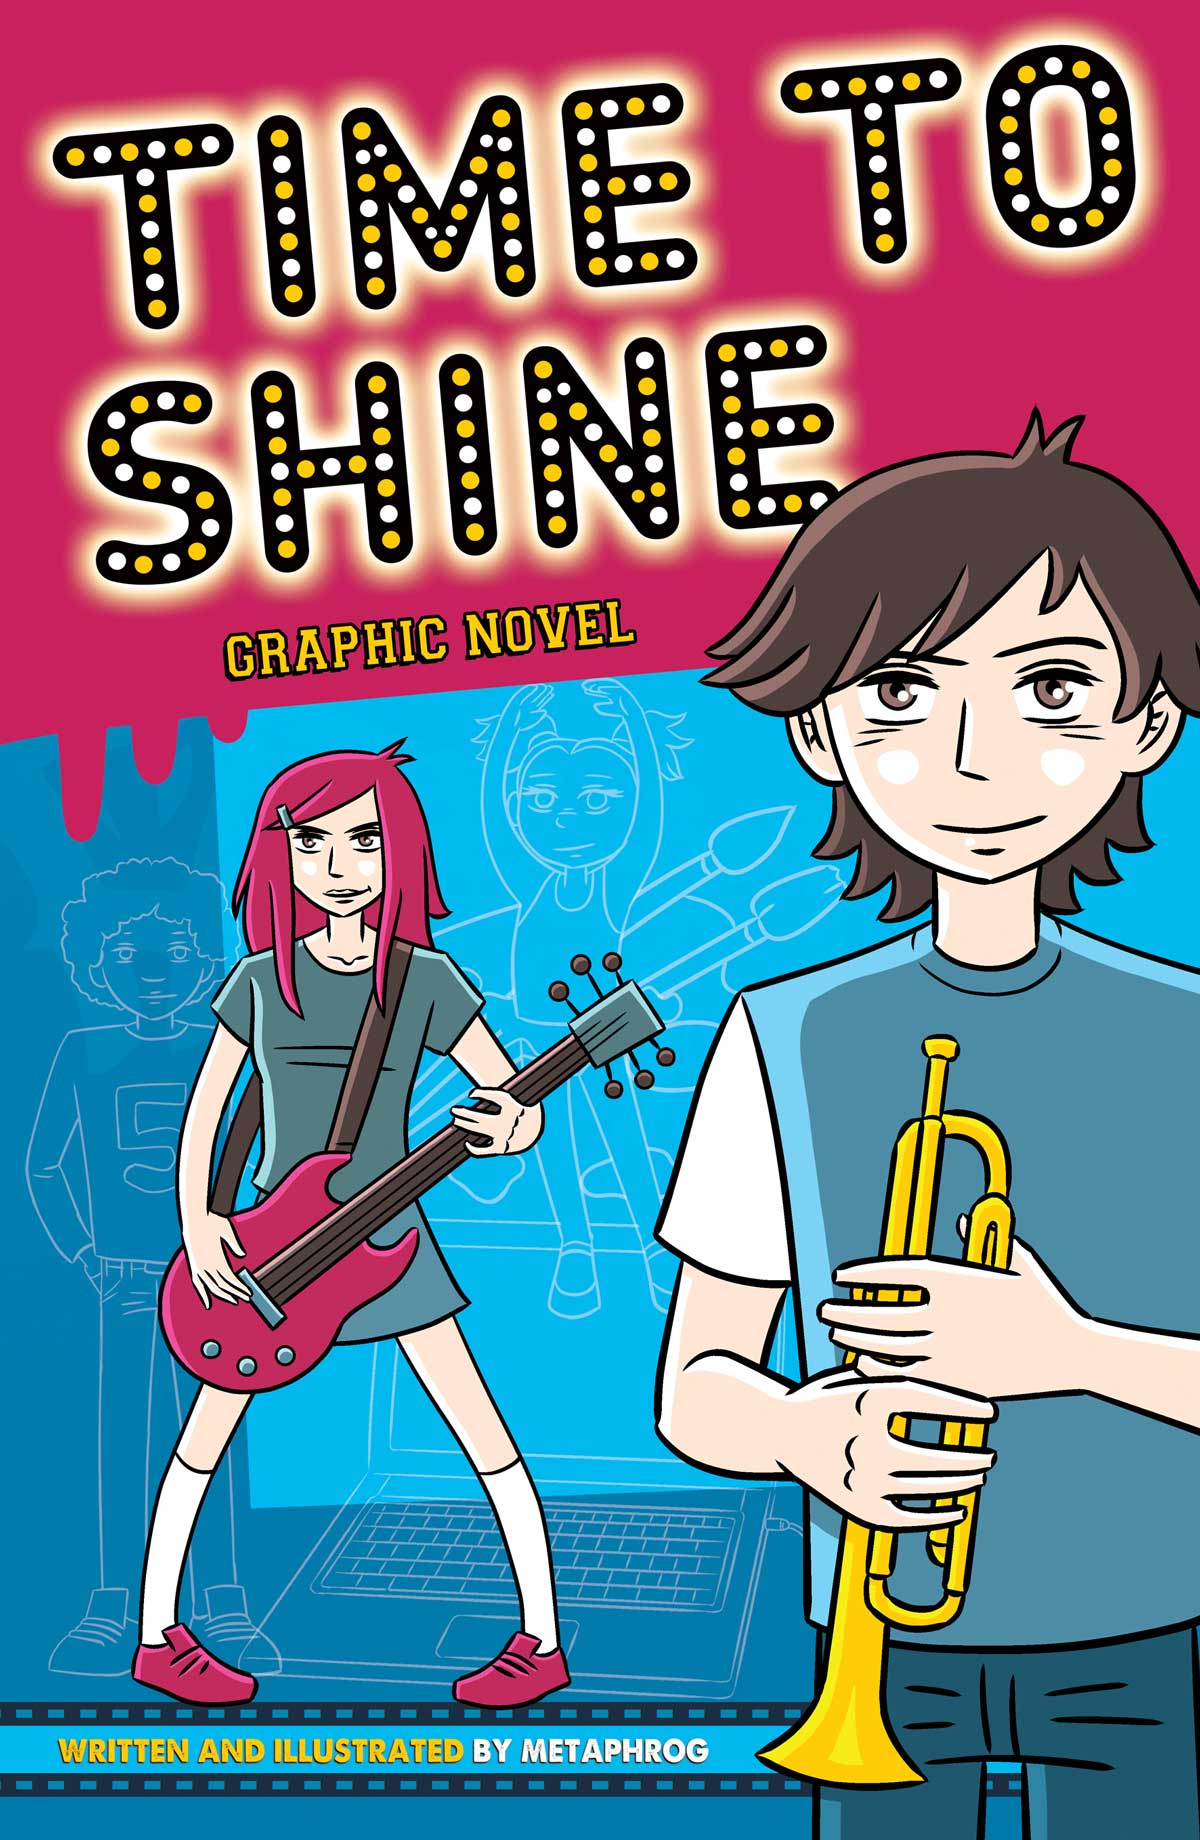 Time To Shine Graphic Novel by Metaphrog